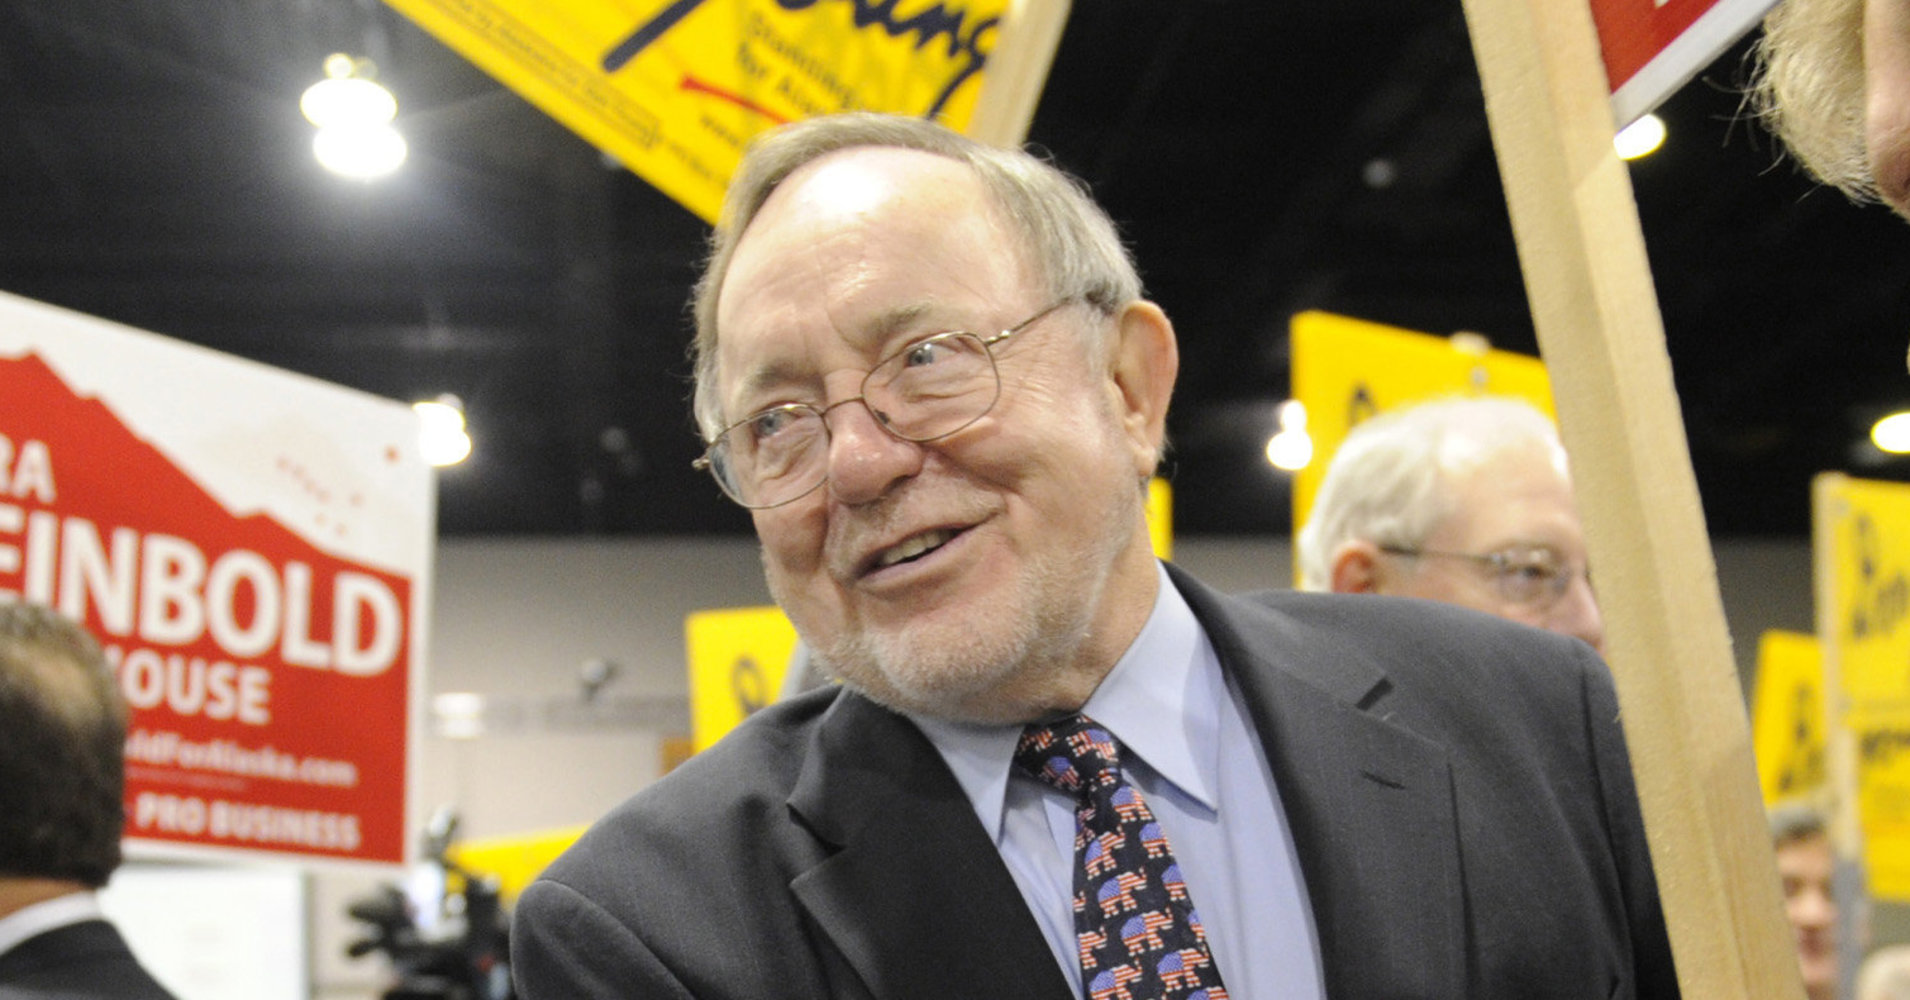 Don Young Suggests The Holocaust Happened Because Jewish People Weren't Armed